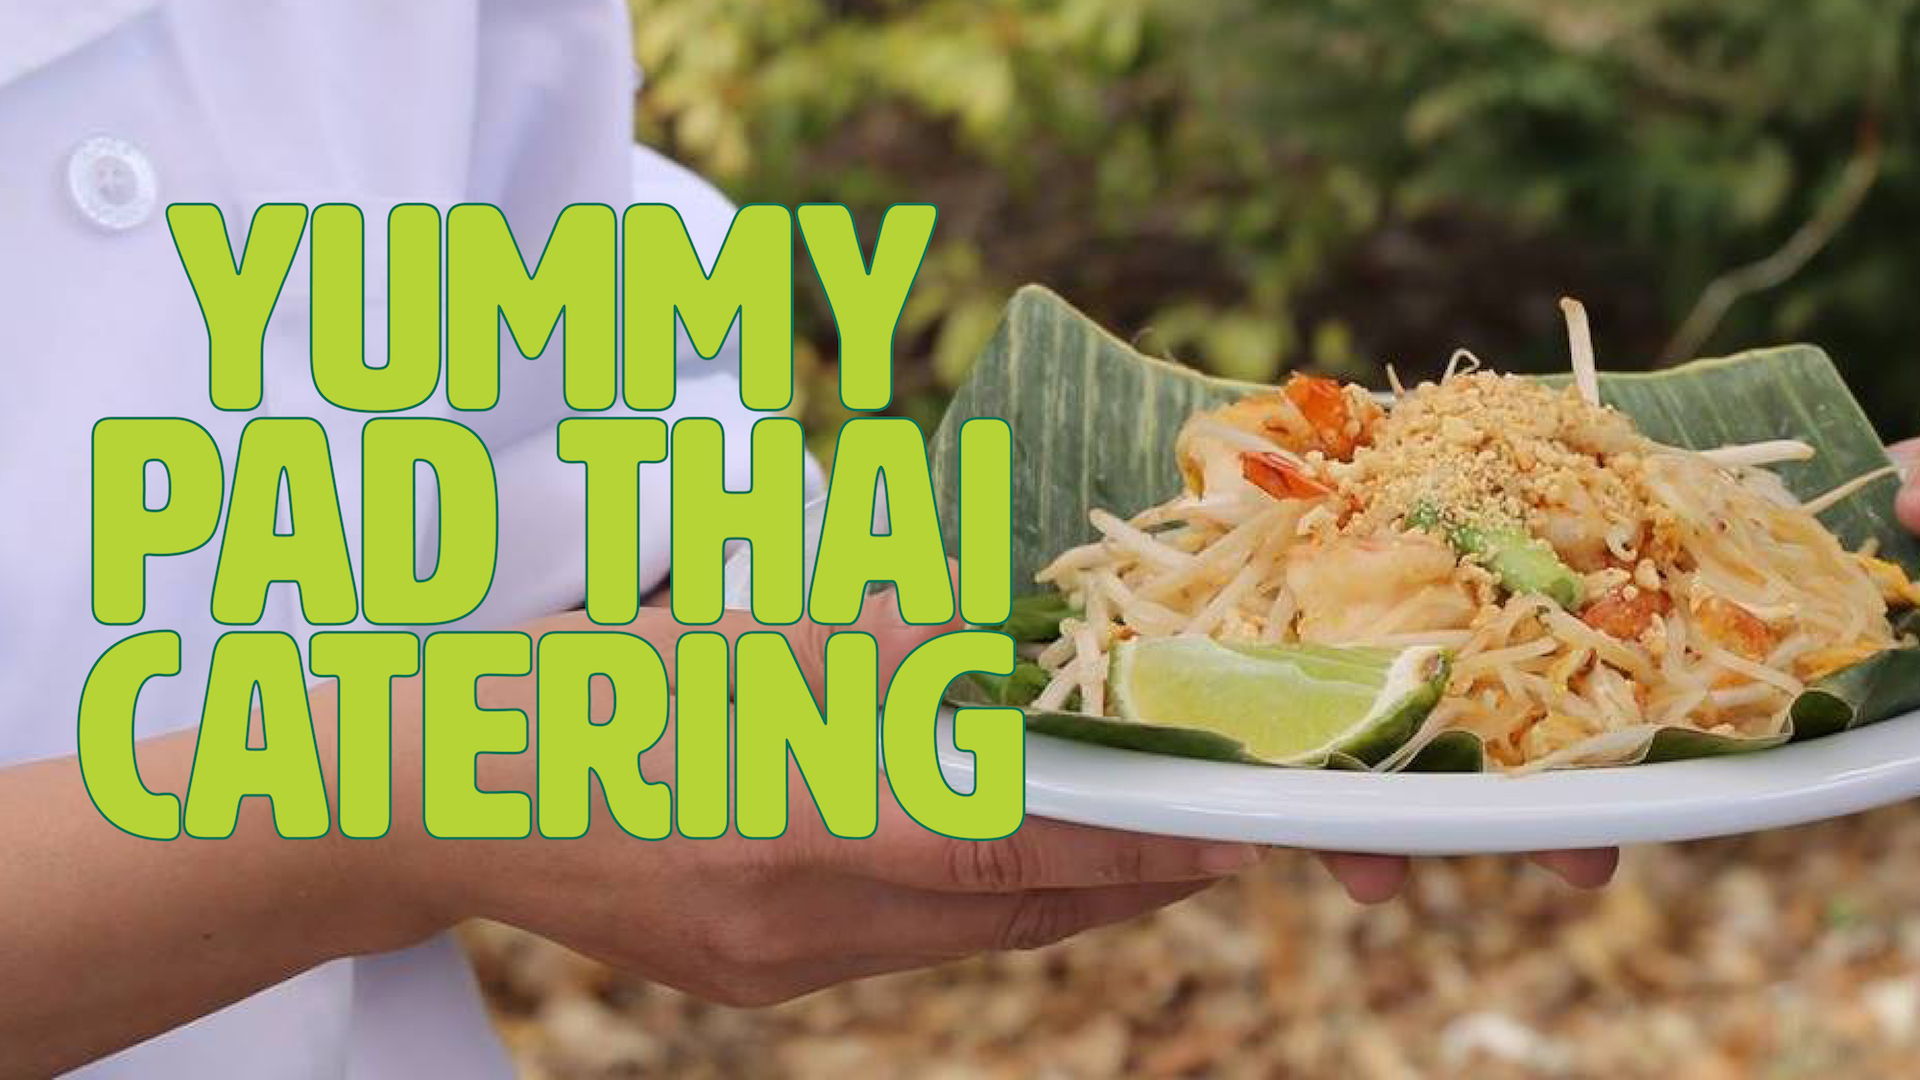 YummyPad Thai Catering.jpg